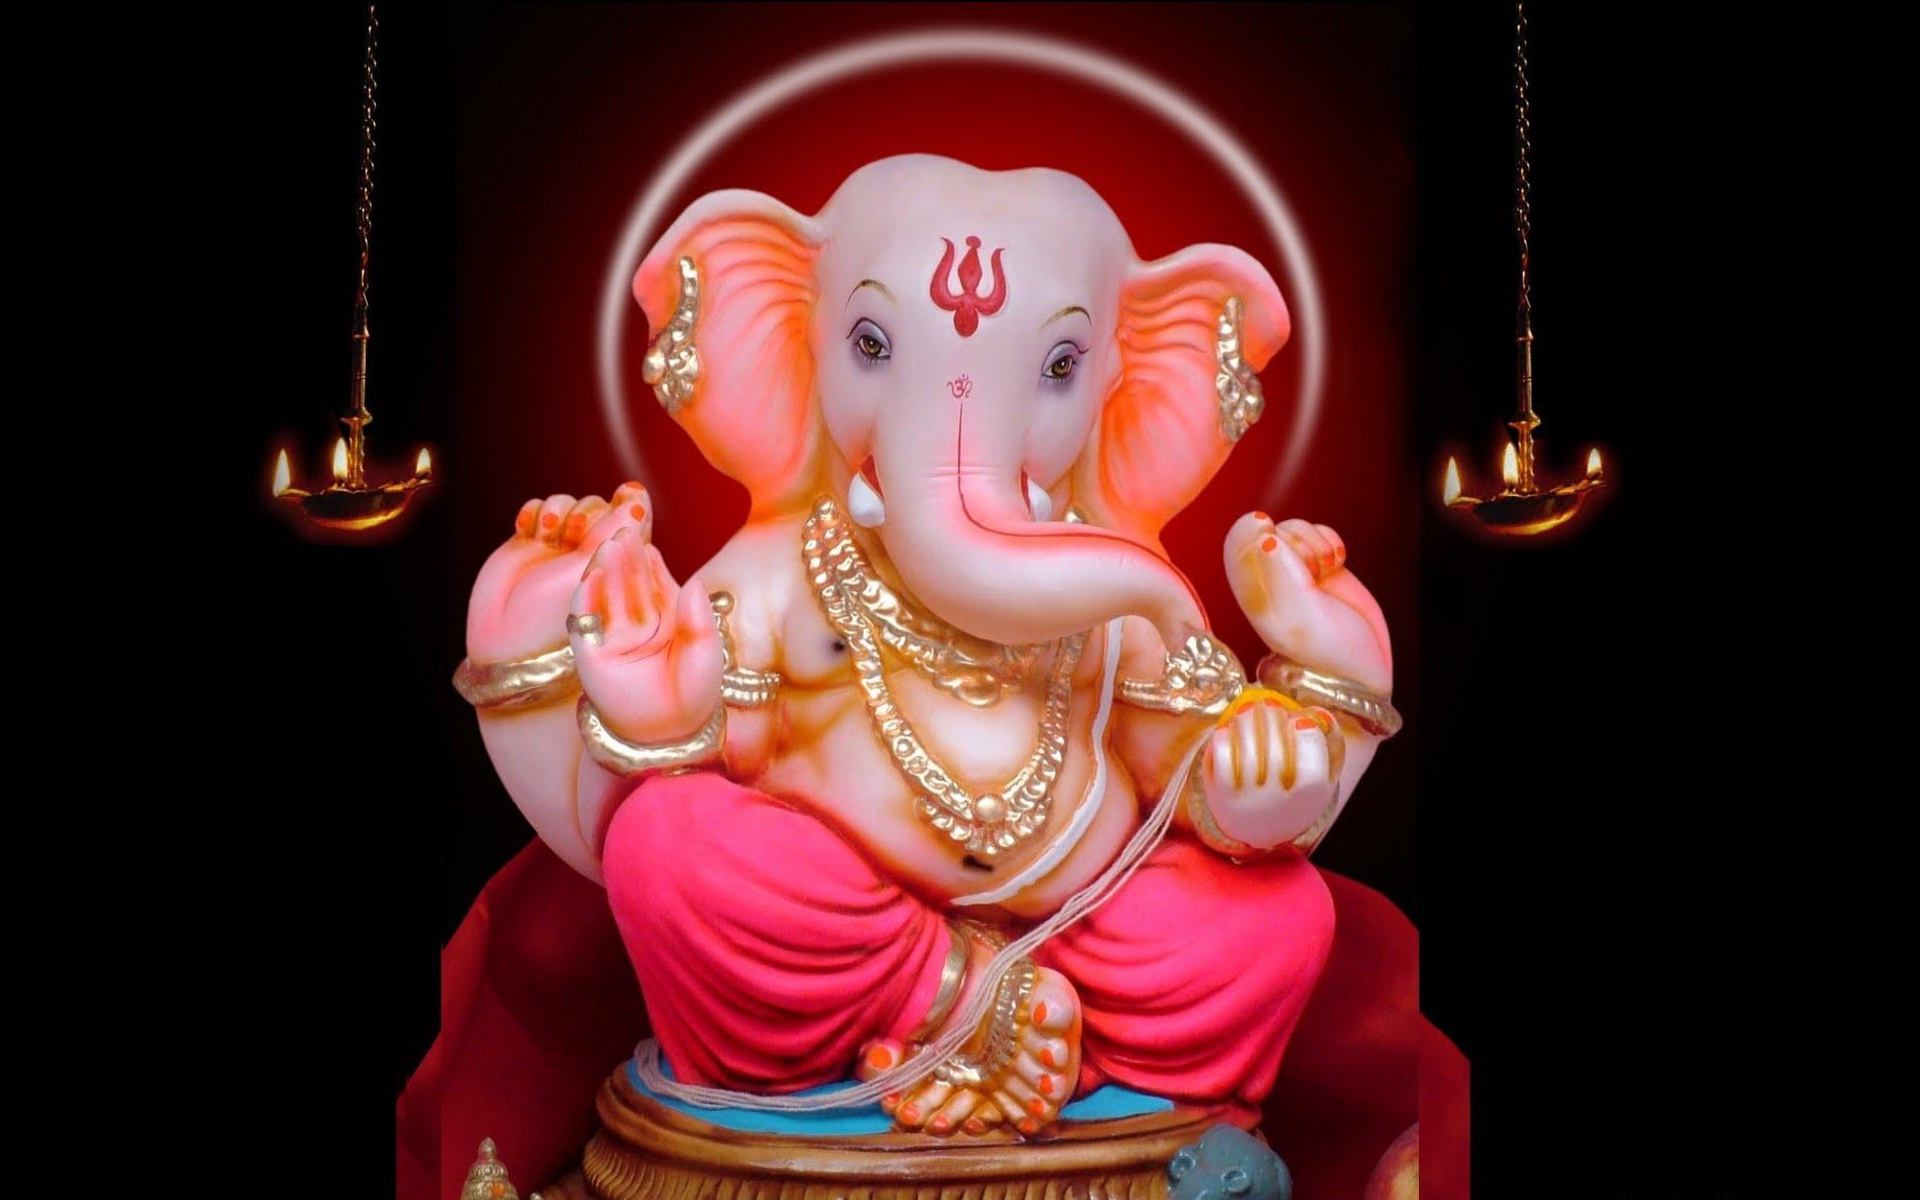 Lord Ganesha Pictures Hd: {Latest} Lord Ganesha HD Wallpaper, Imahes, Photos Free